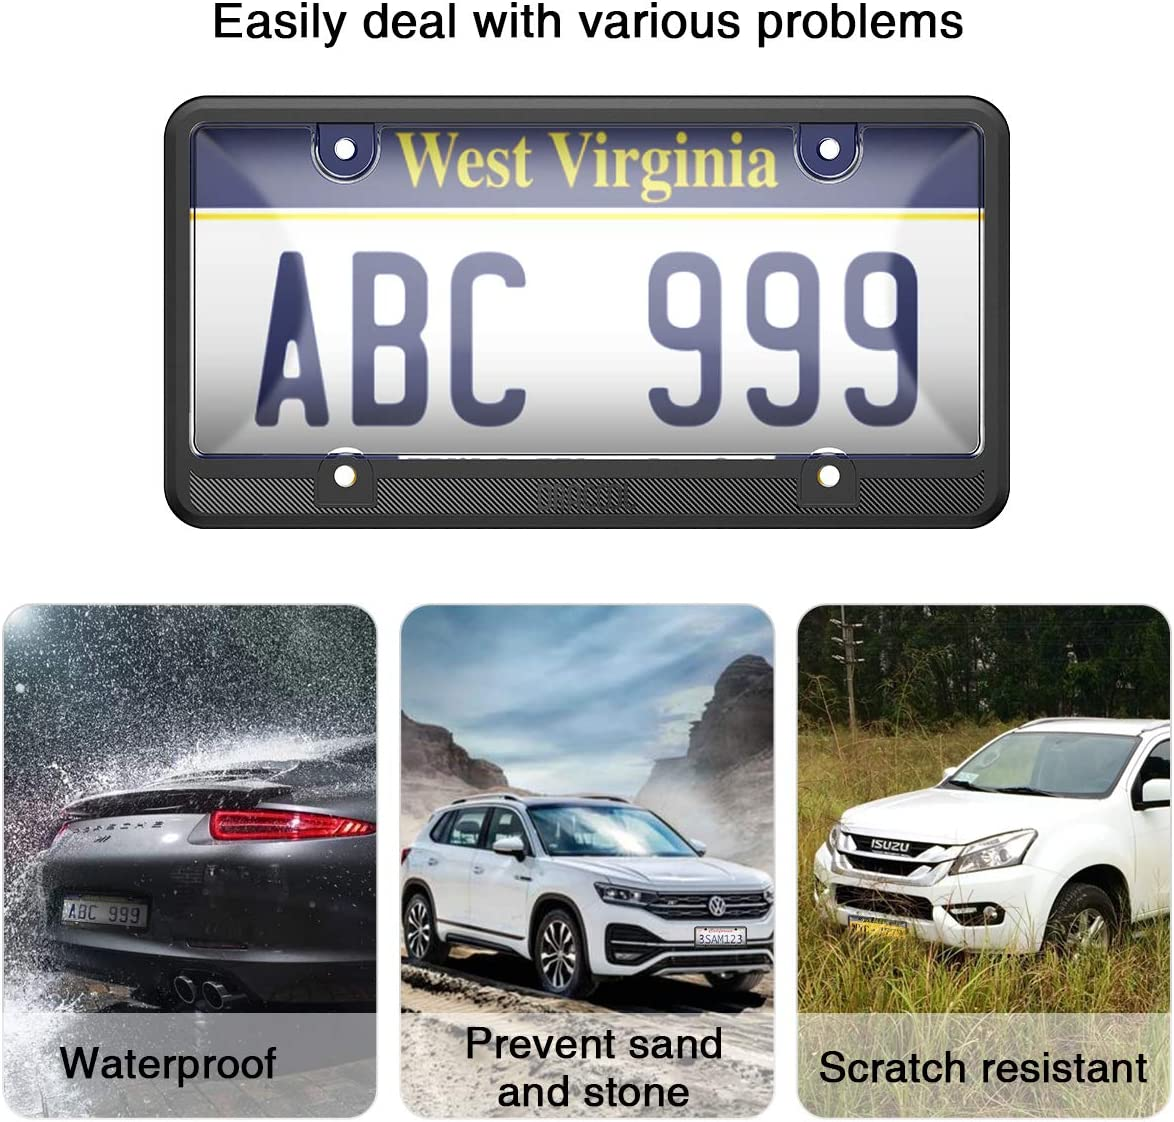 Dracool for License Plate Frame 4 Holes Silicone Frames for US Standard Car and Clear Transparent Plastic Covers 360 Degree Unbreakable Plates Holder Waterproof,Rust-Proof 4 Screws Included Black